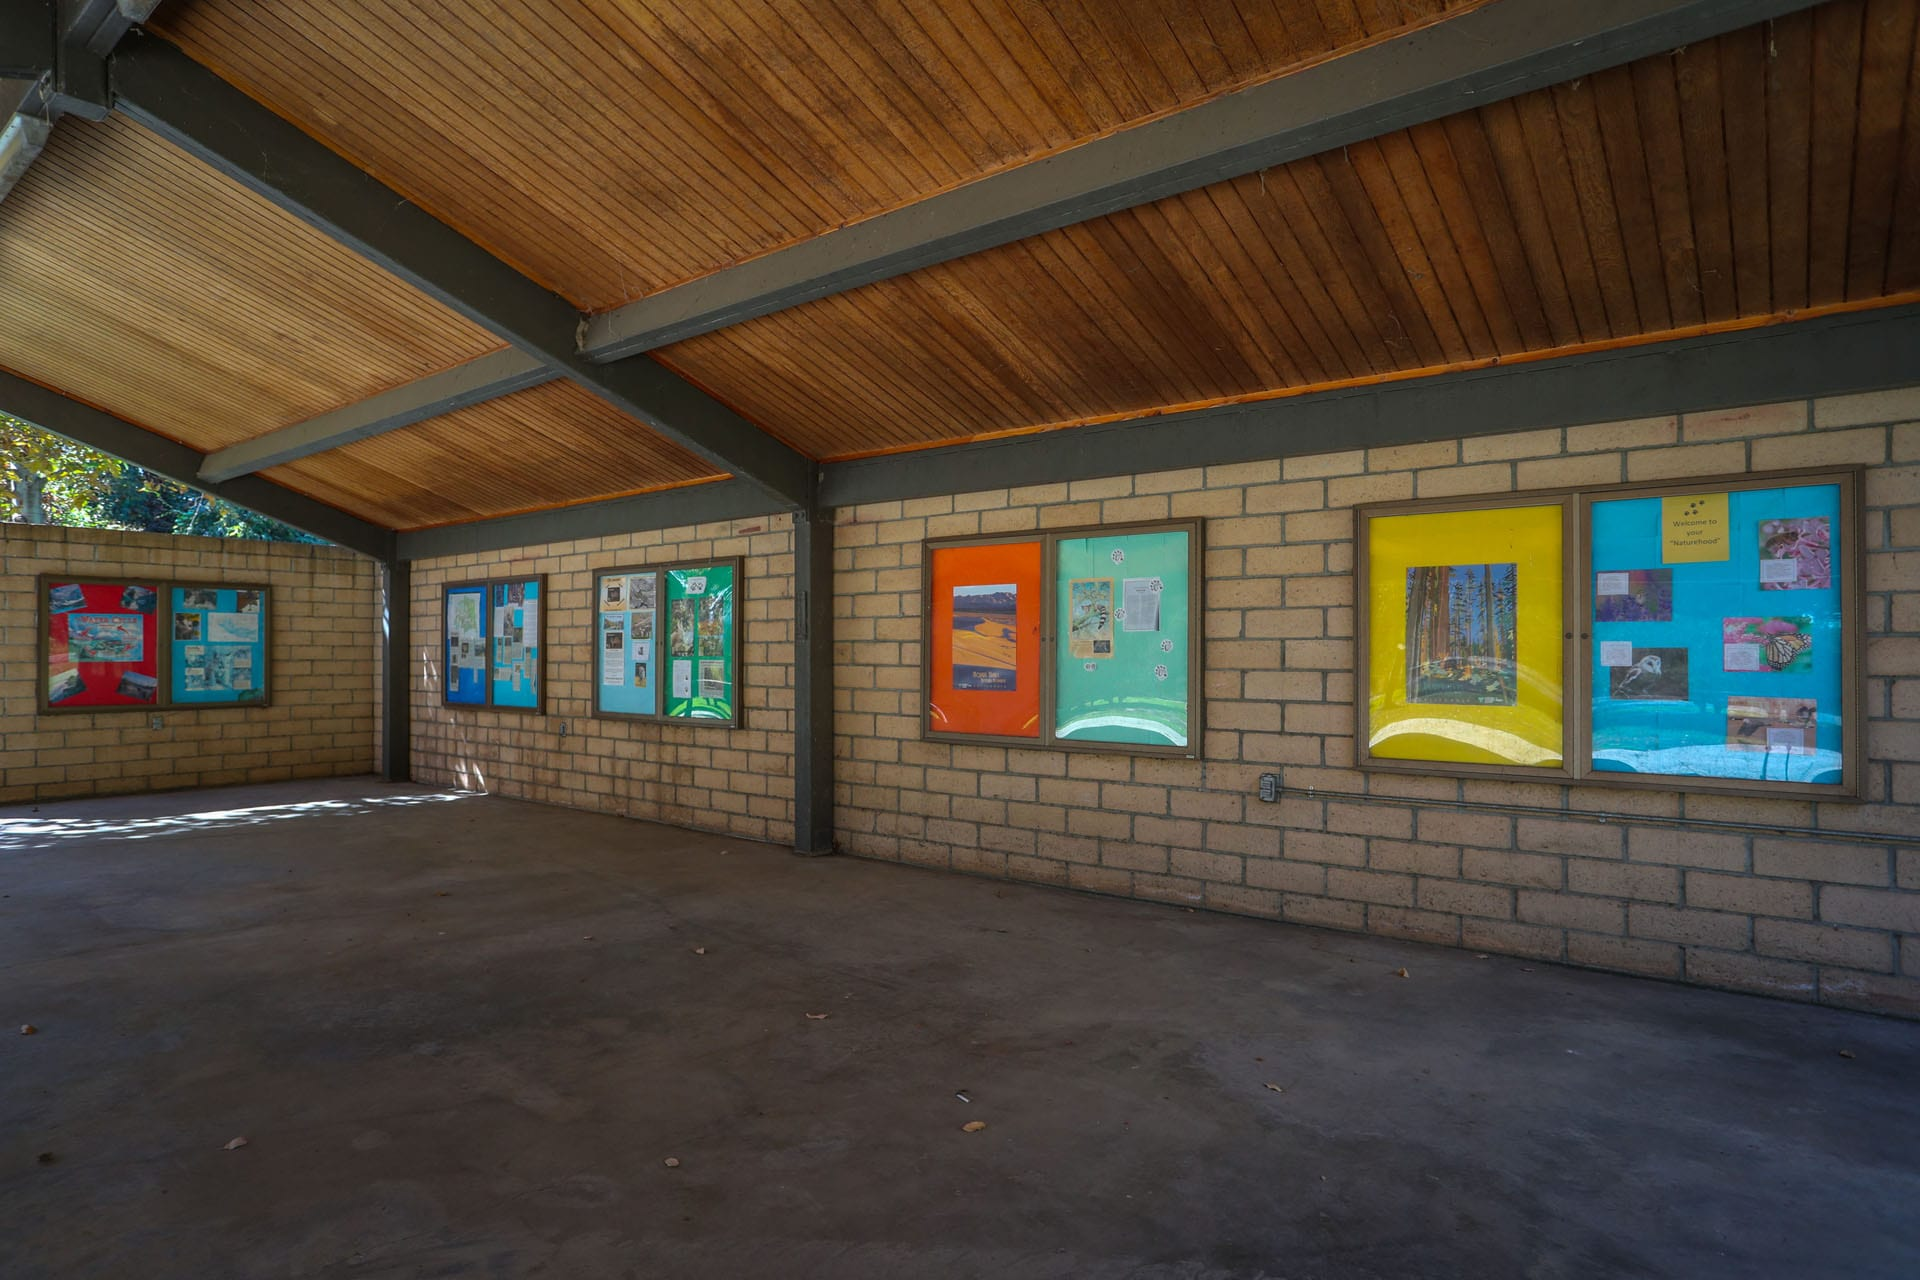 Student art in an outdoor gallery with an awning